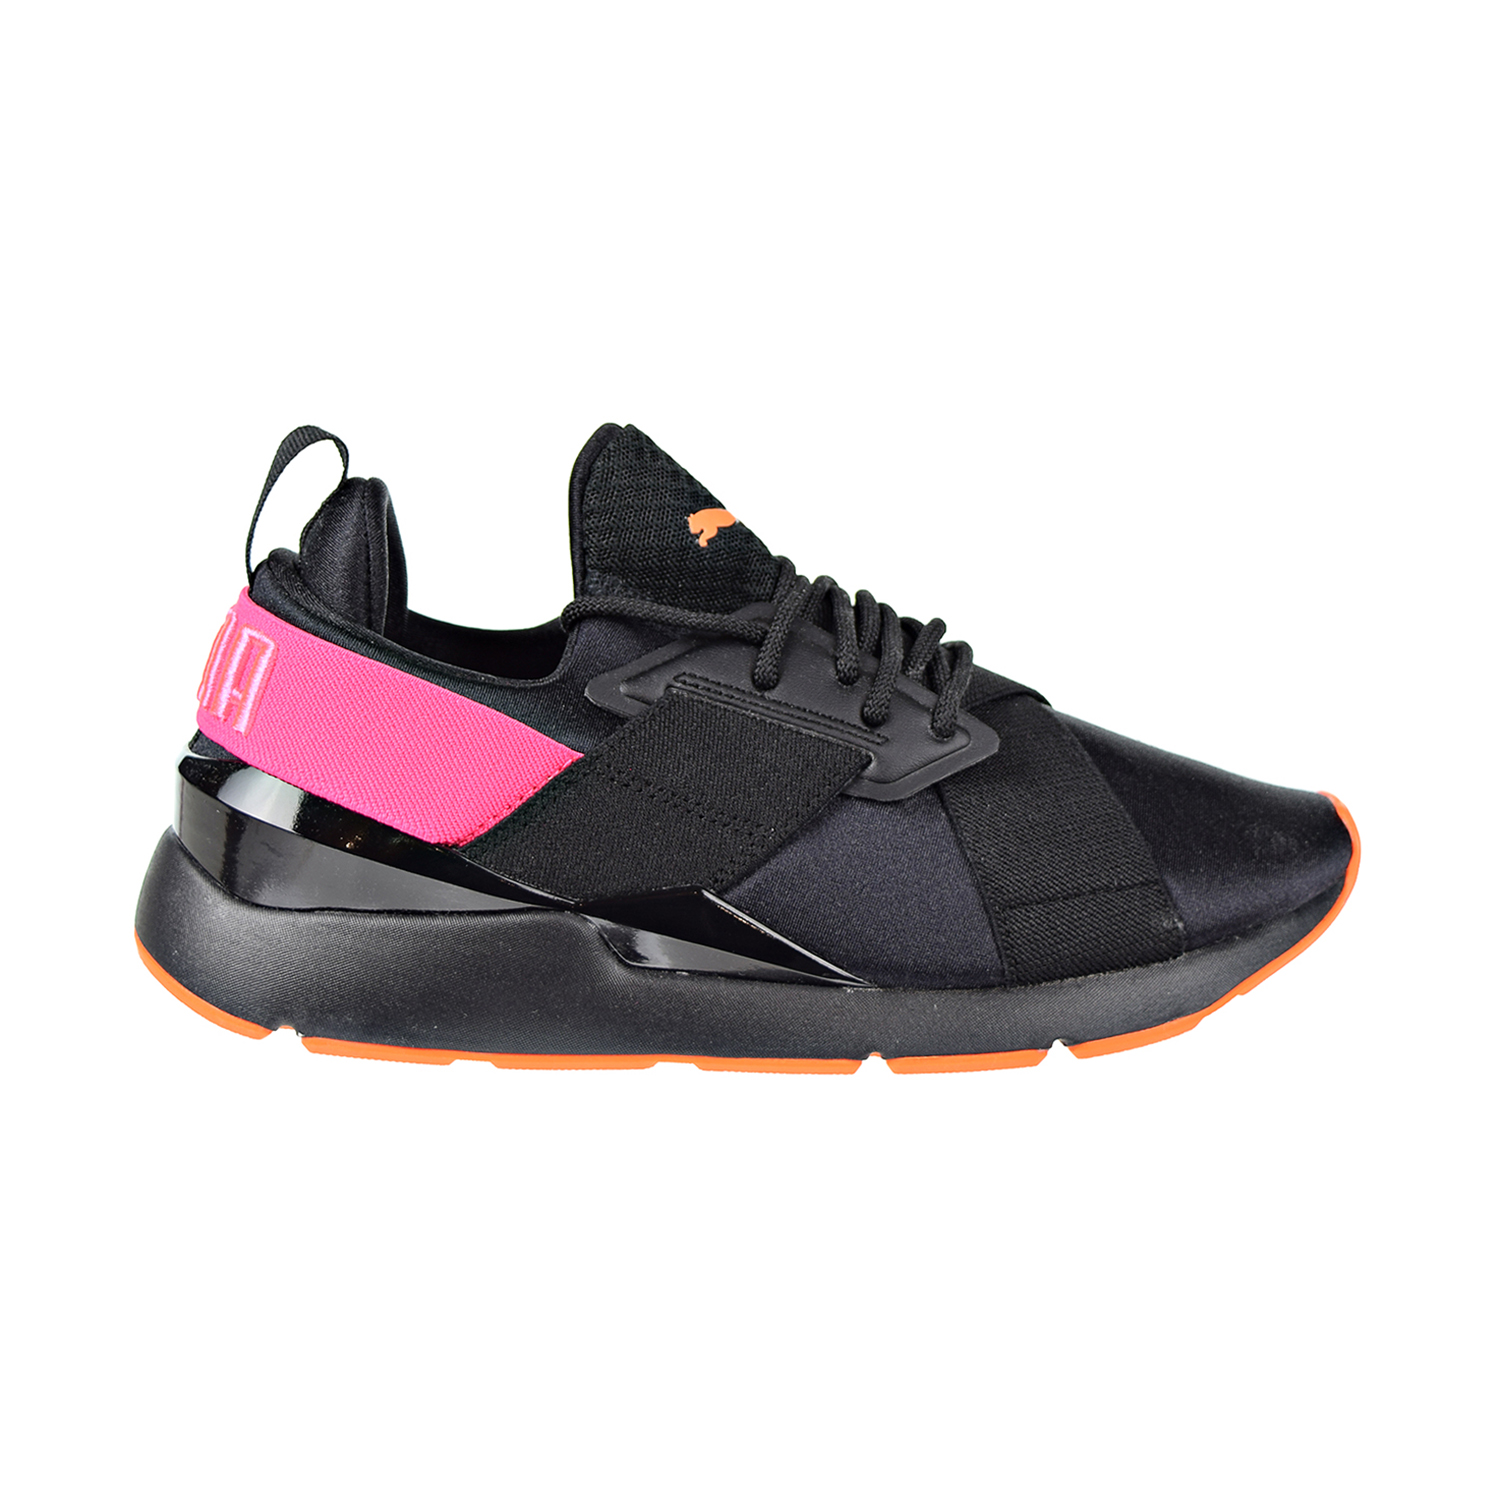 Details about Puma Muse Chase Big Kids Shoes Puma Black Knockout Pink 368036 01